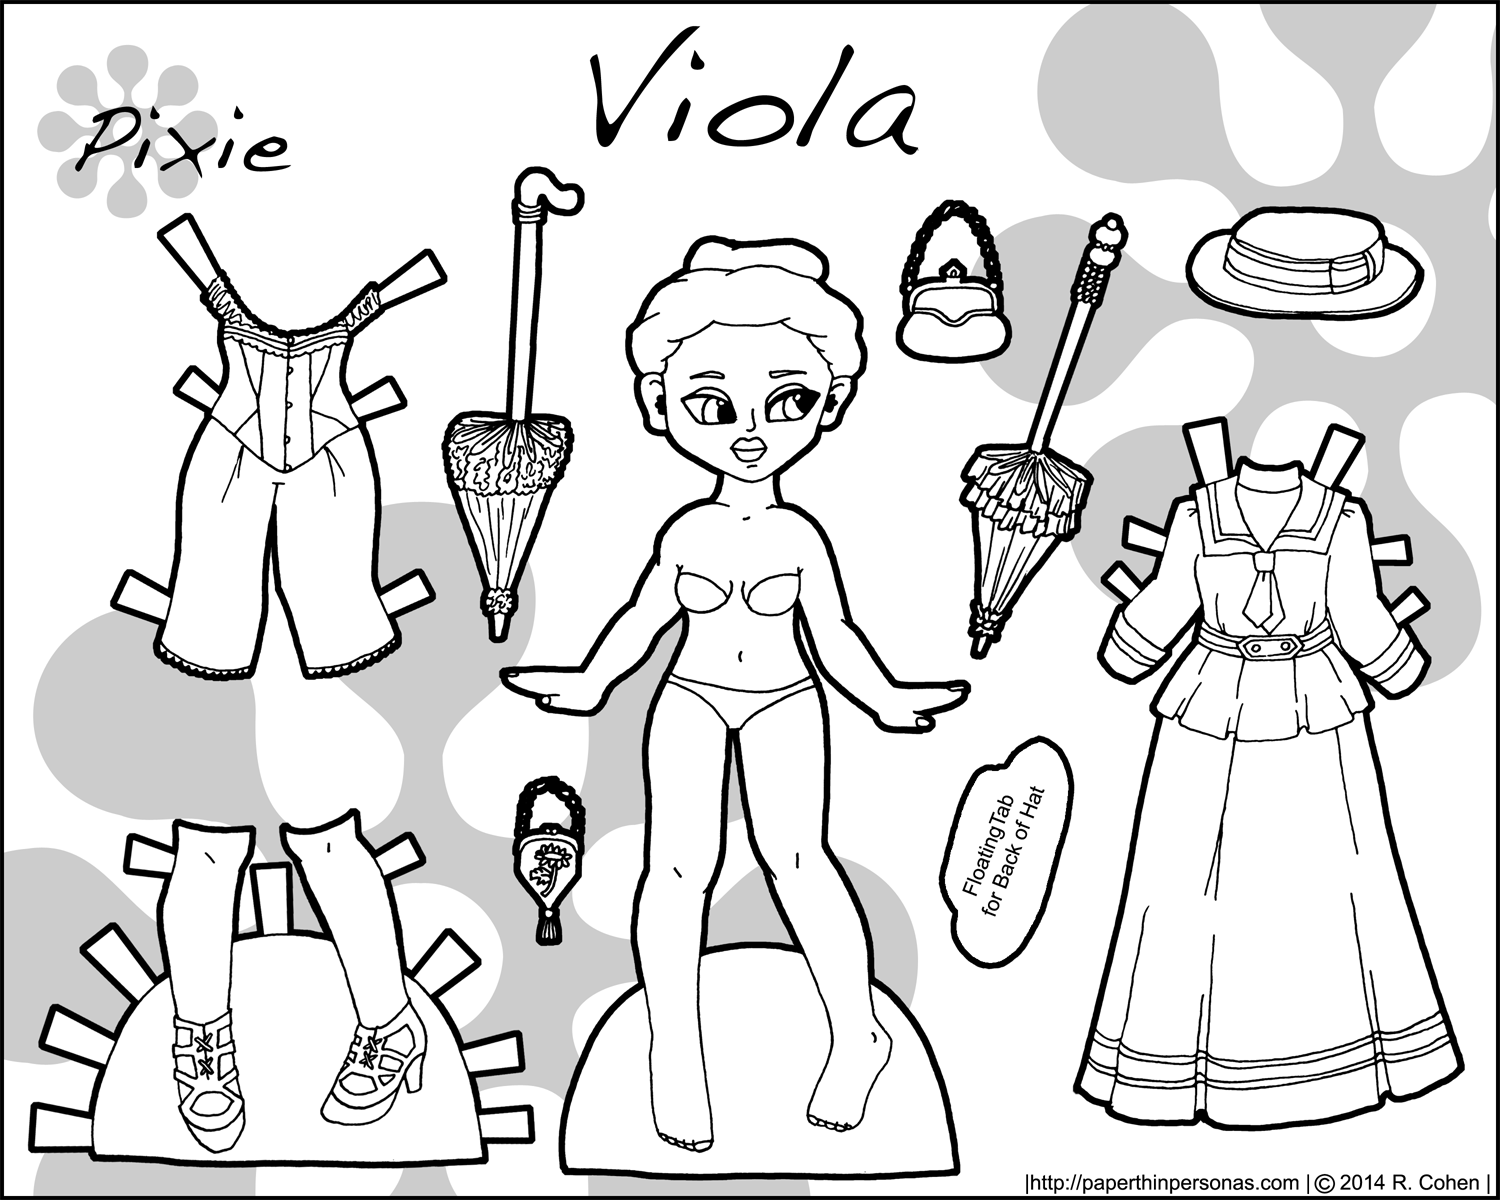 A historical paper doll with 1890s fashions to color- free to print from paperthinpersonas.com.